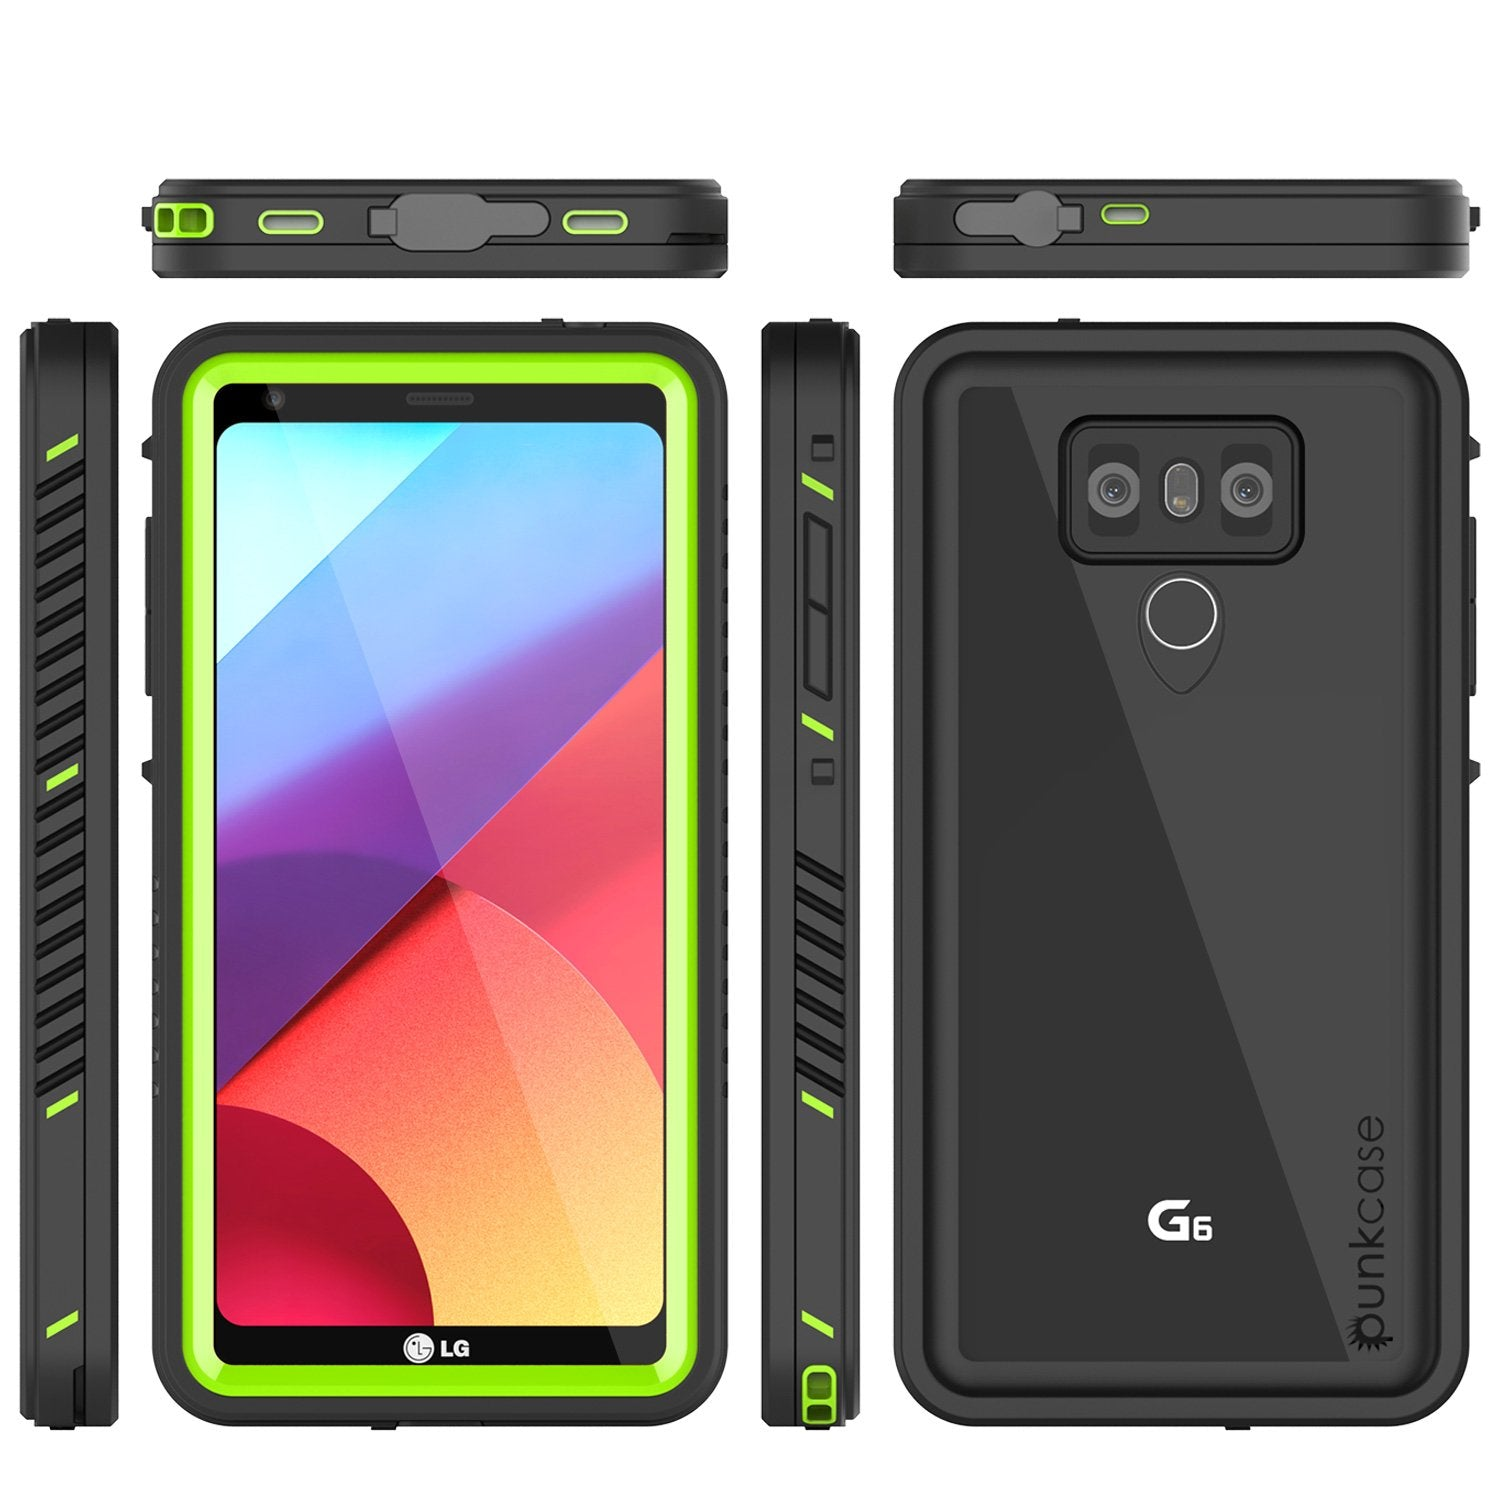 LG G6 Waterproof Case, Punkcase Extreme Series Slim Fit [GREEN]